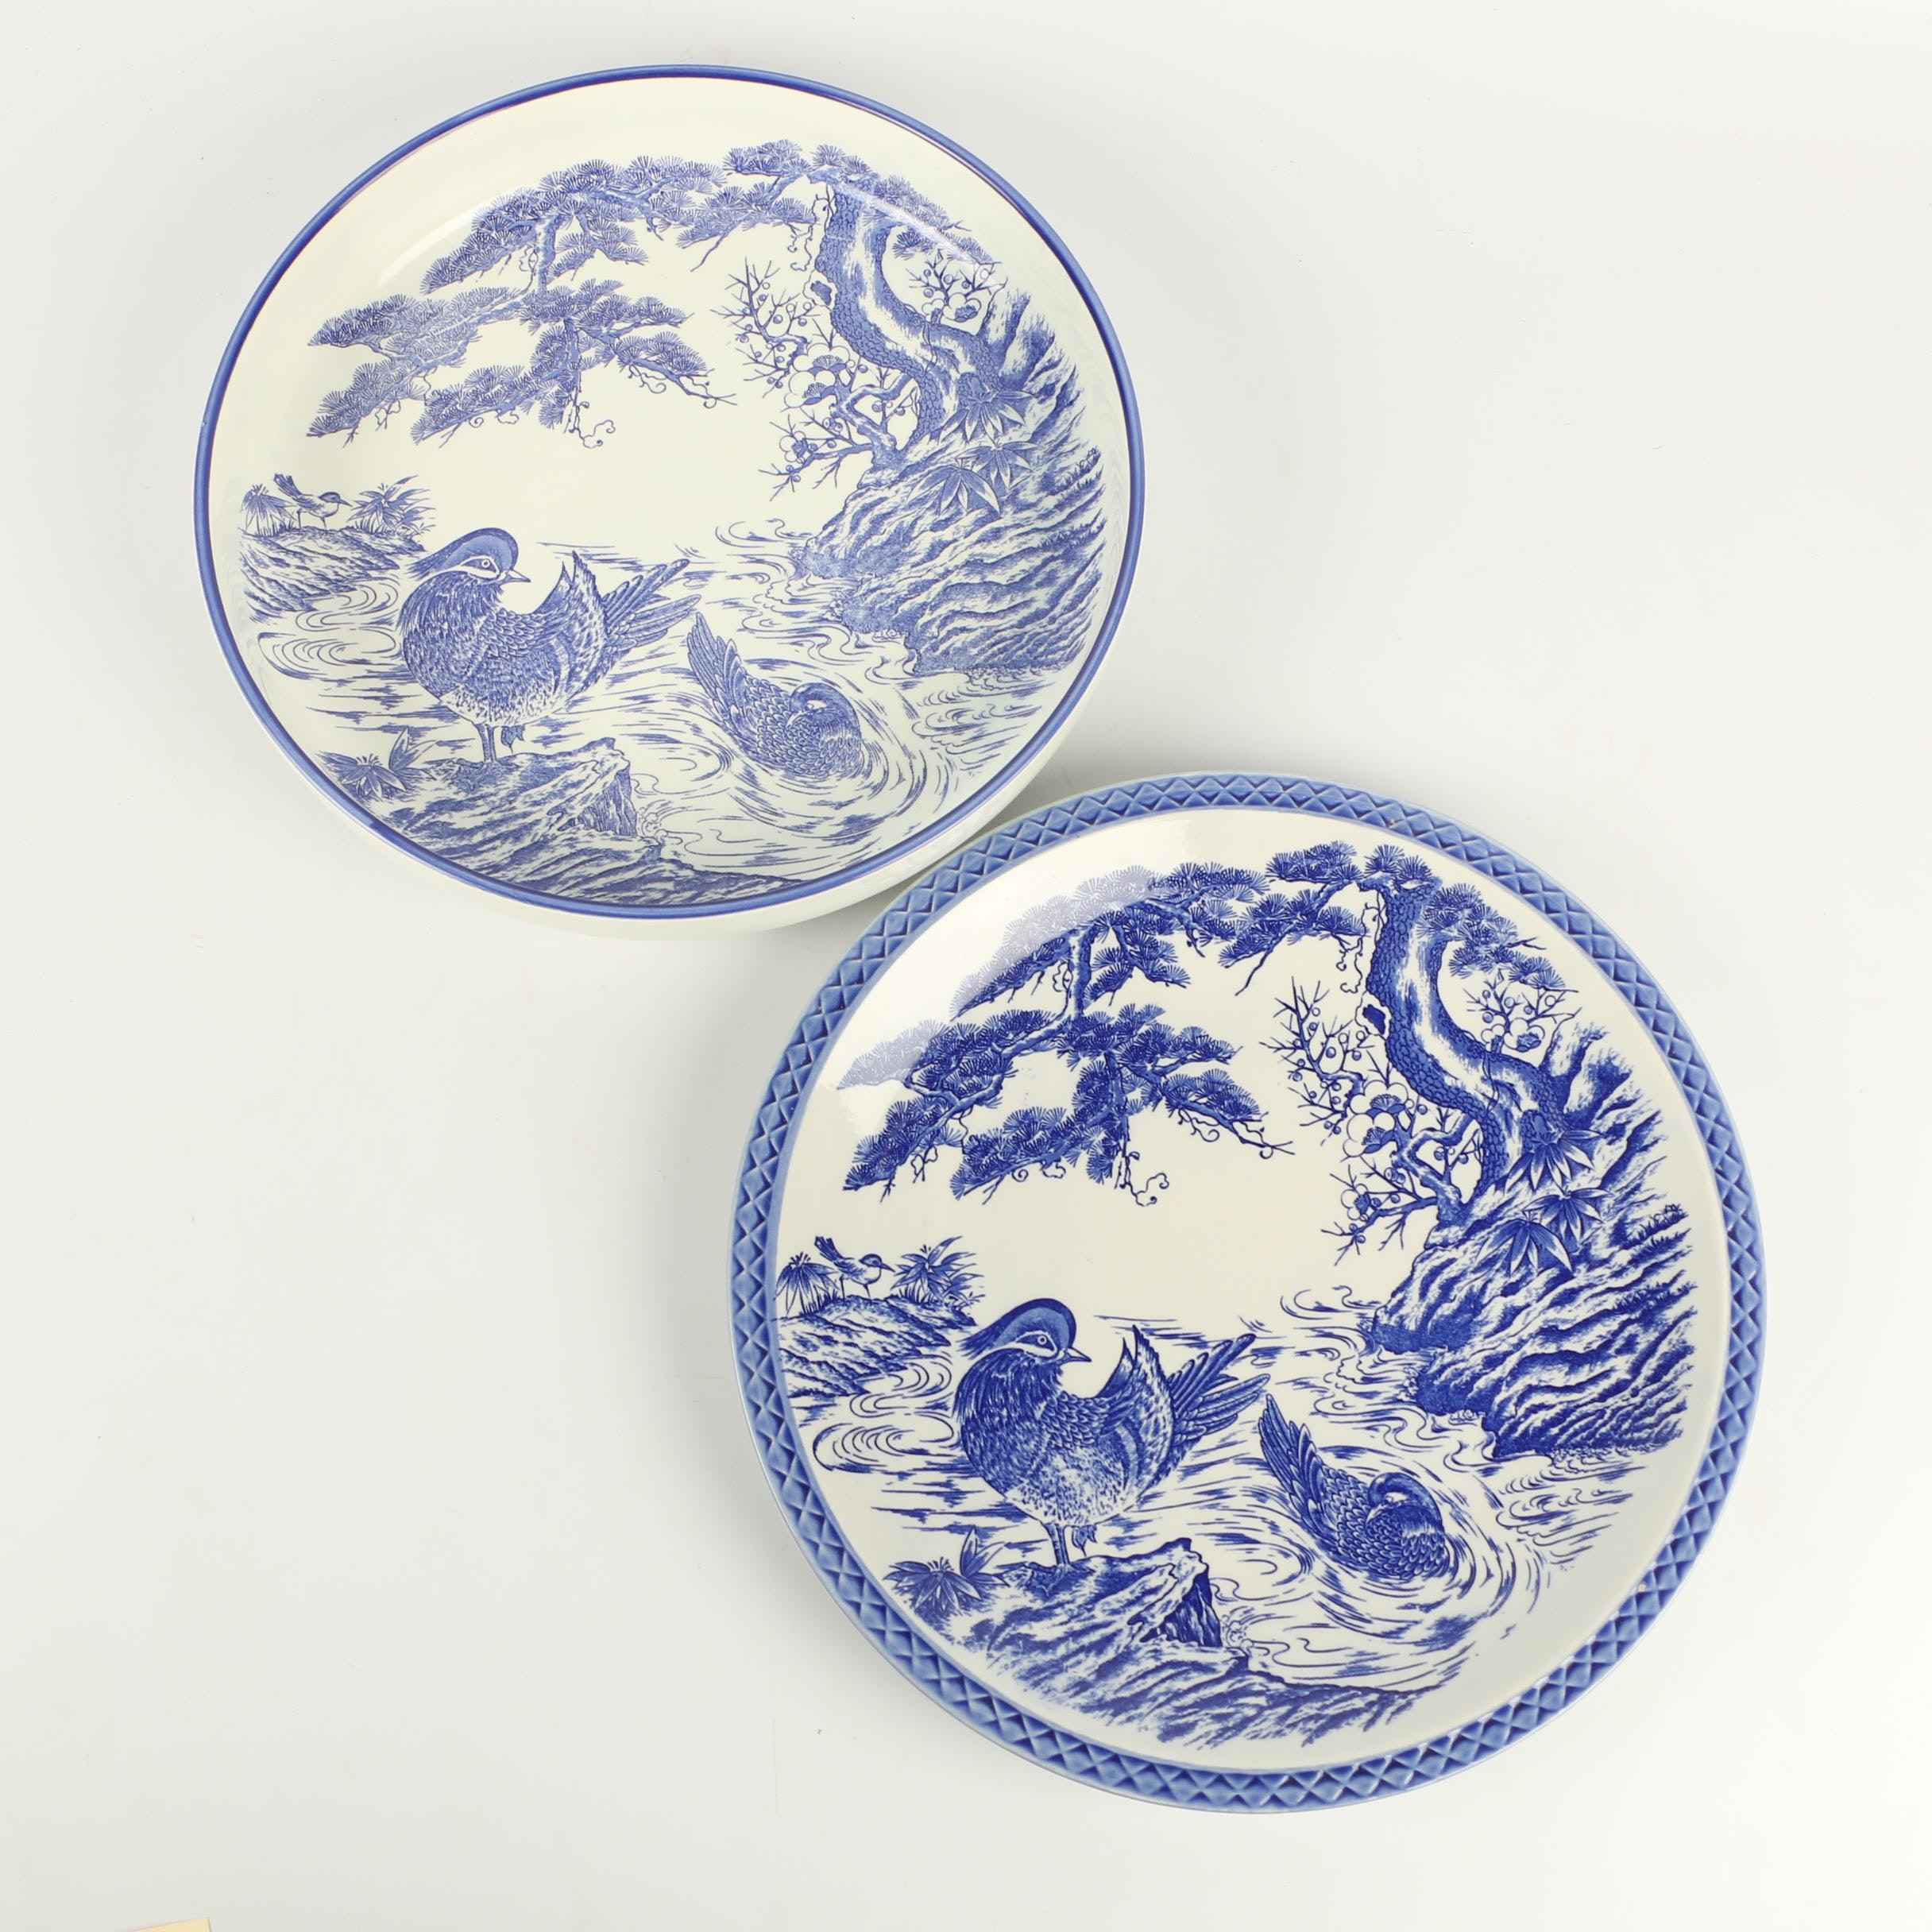 Chinese Blue and White Ceramic Serving Platter and Bowl